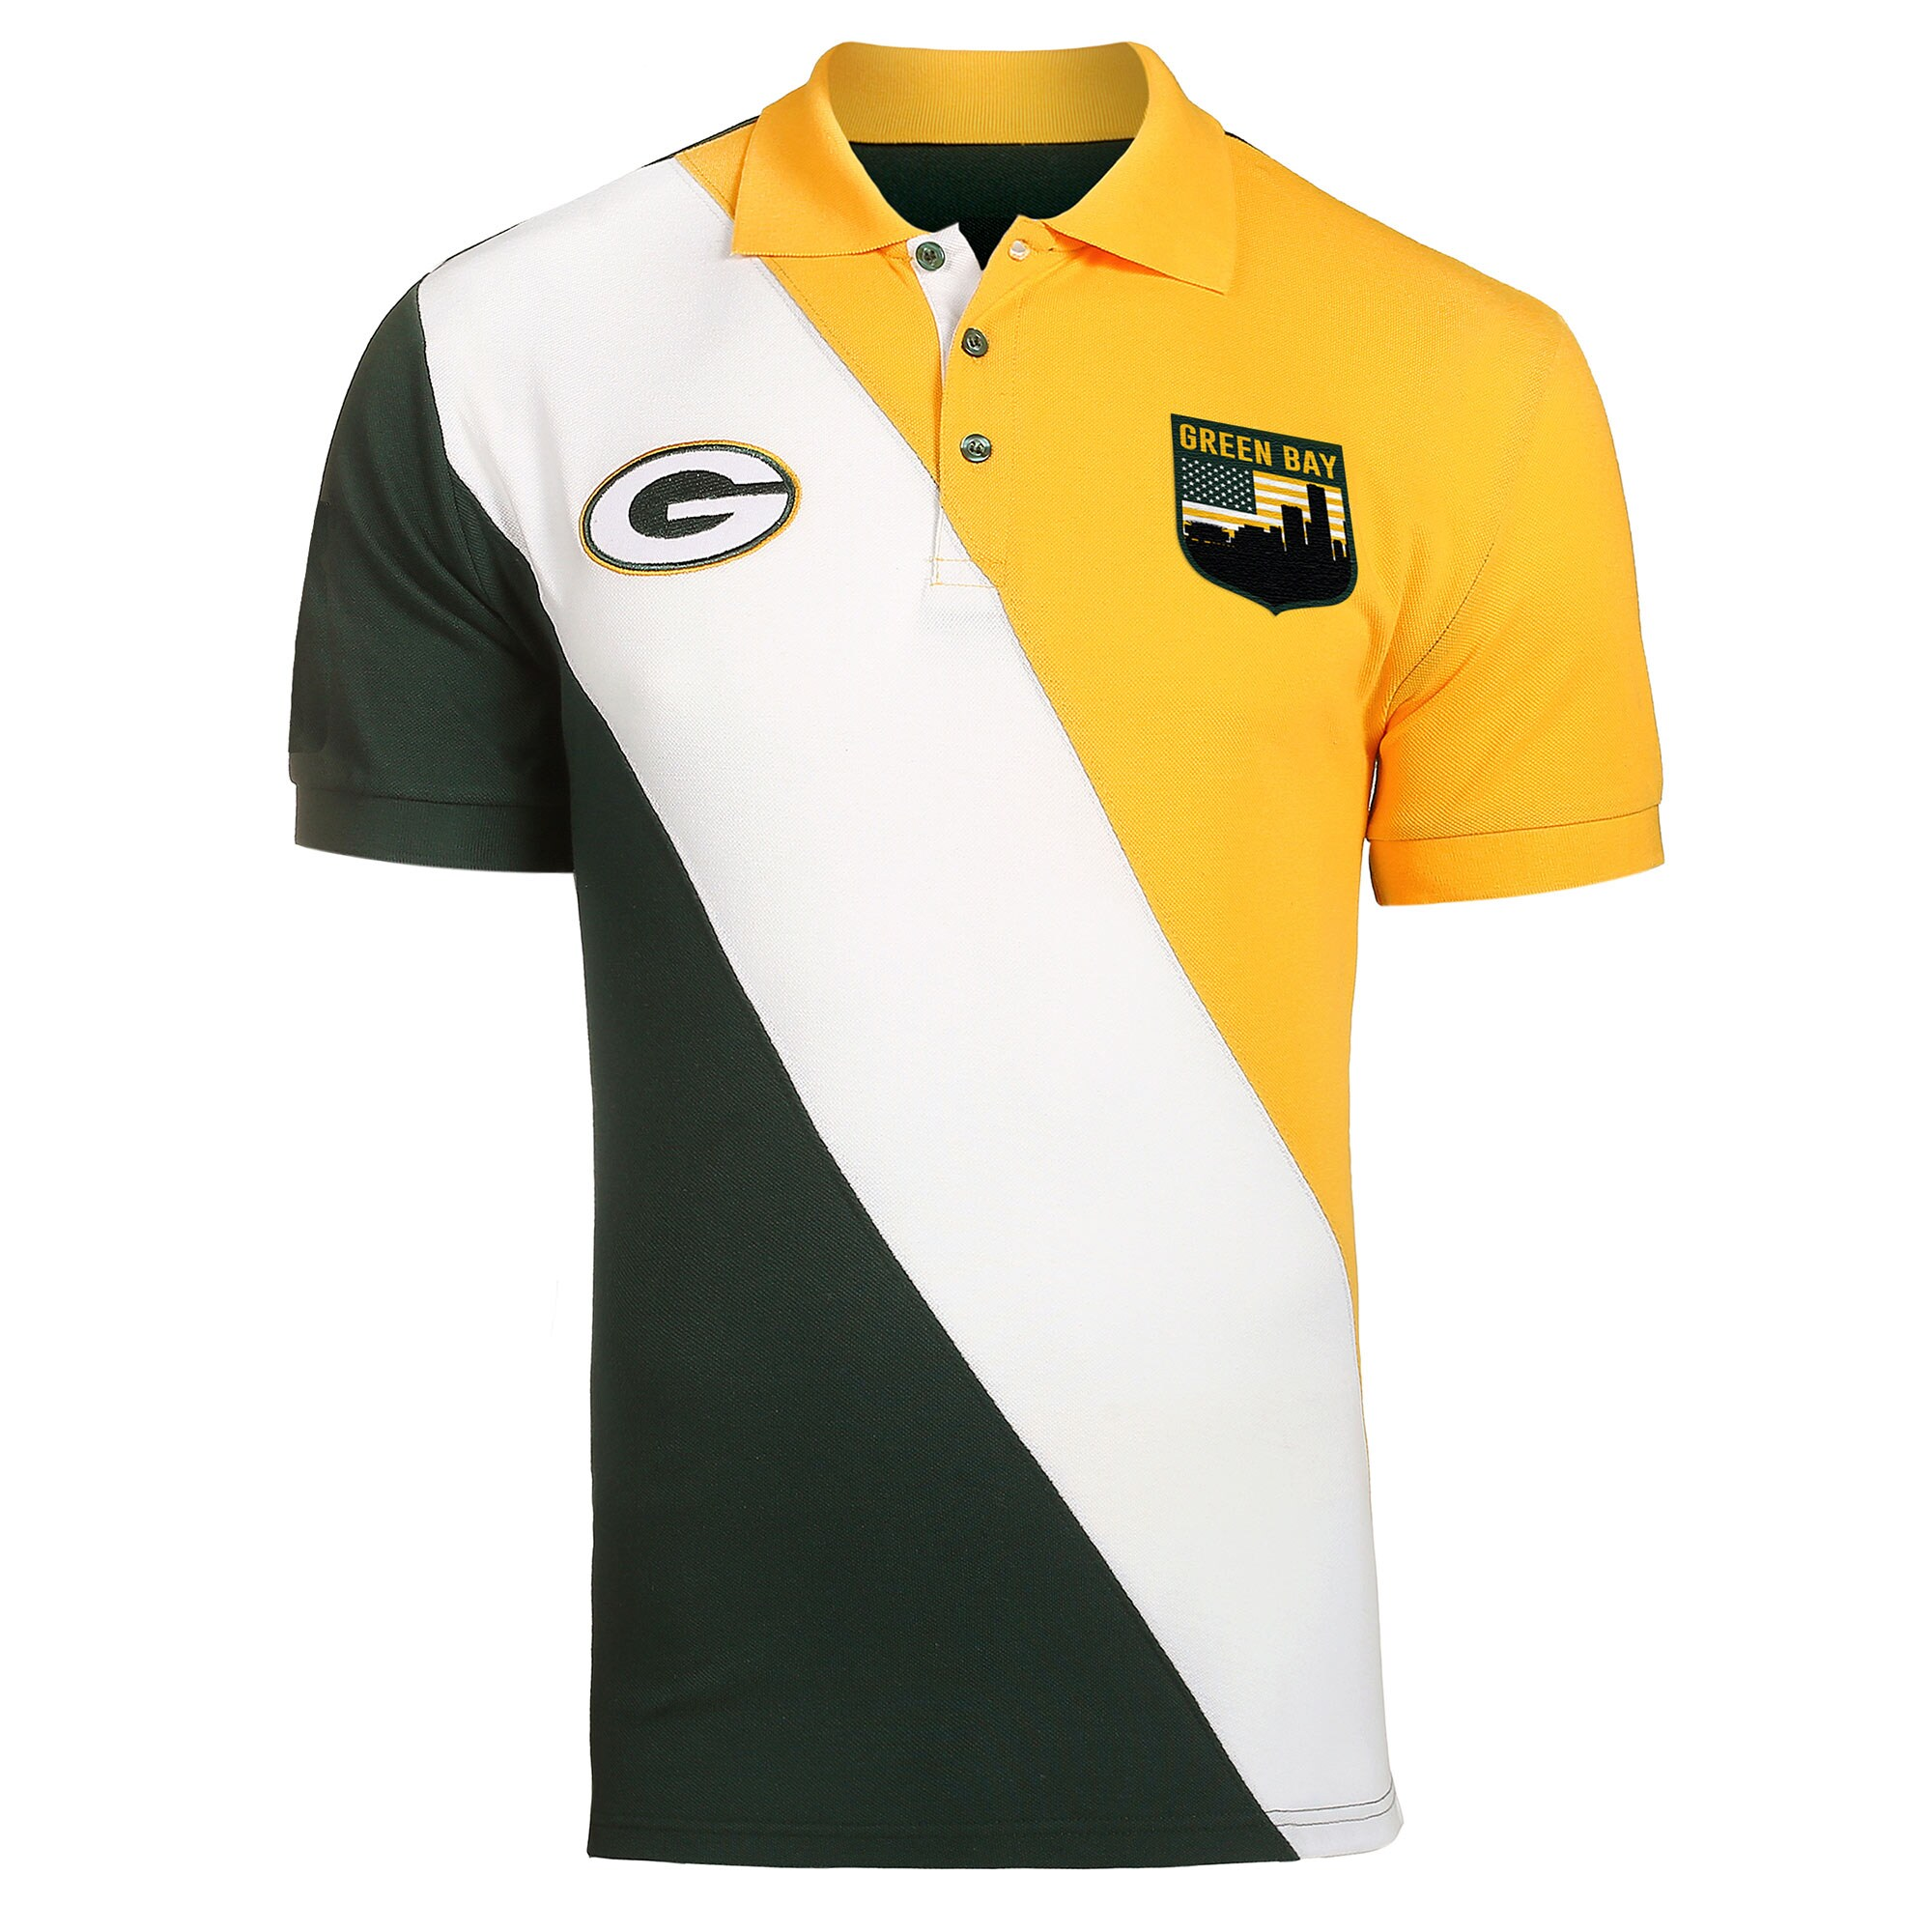 Green Bay Packers Diagonal Stripe Rugby Polo - Green/Gold